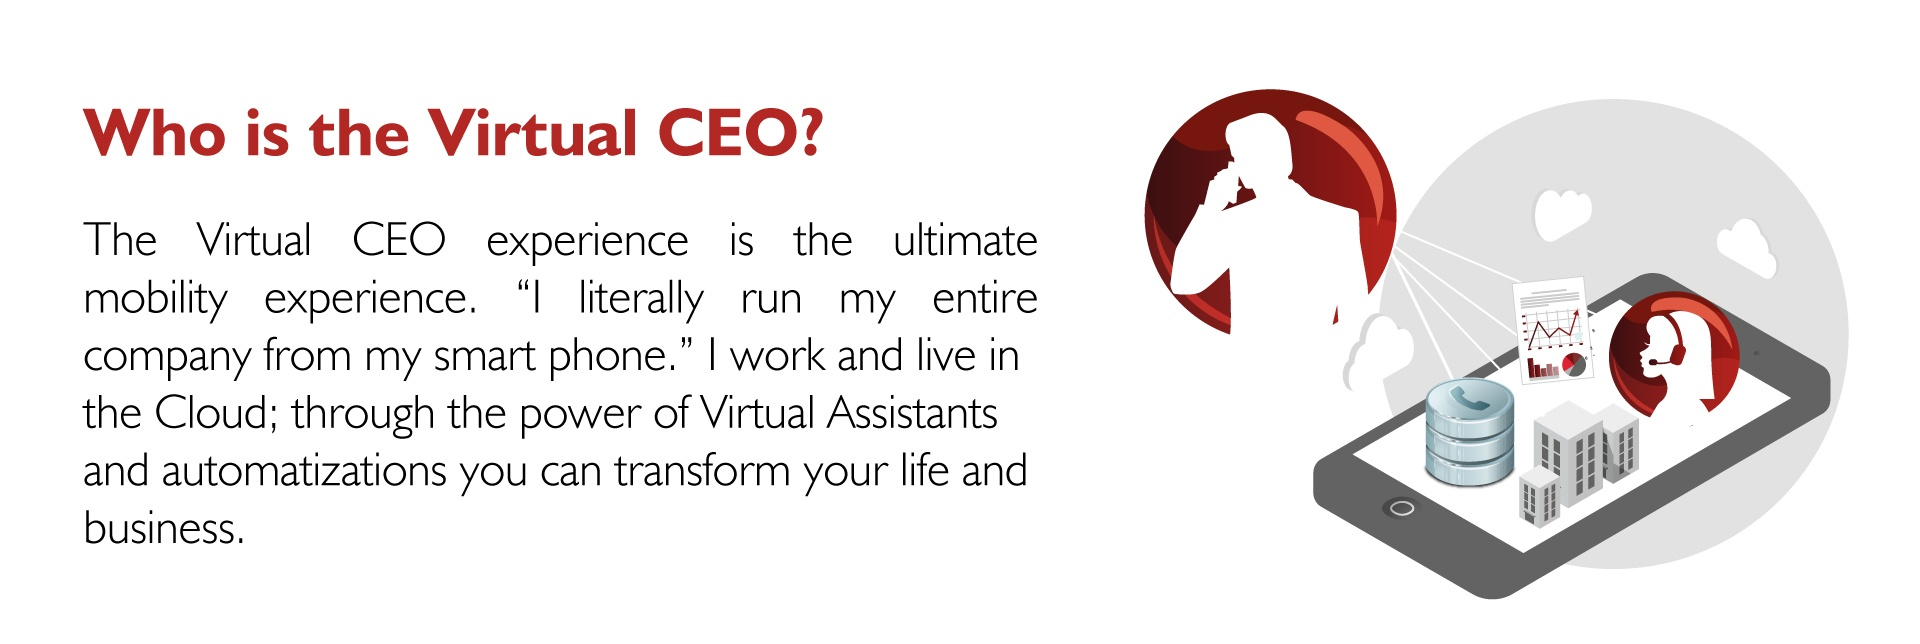 who-is-the-Virtual-ceo2.jpg